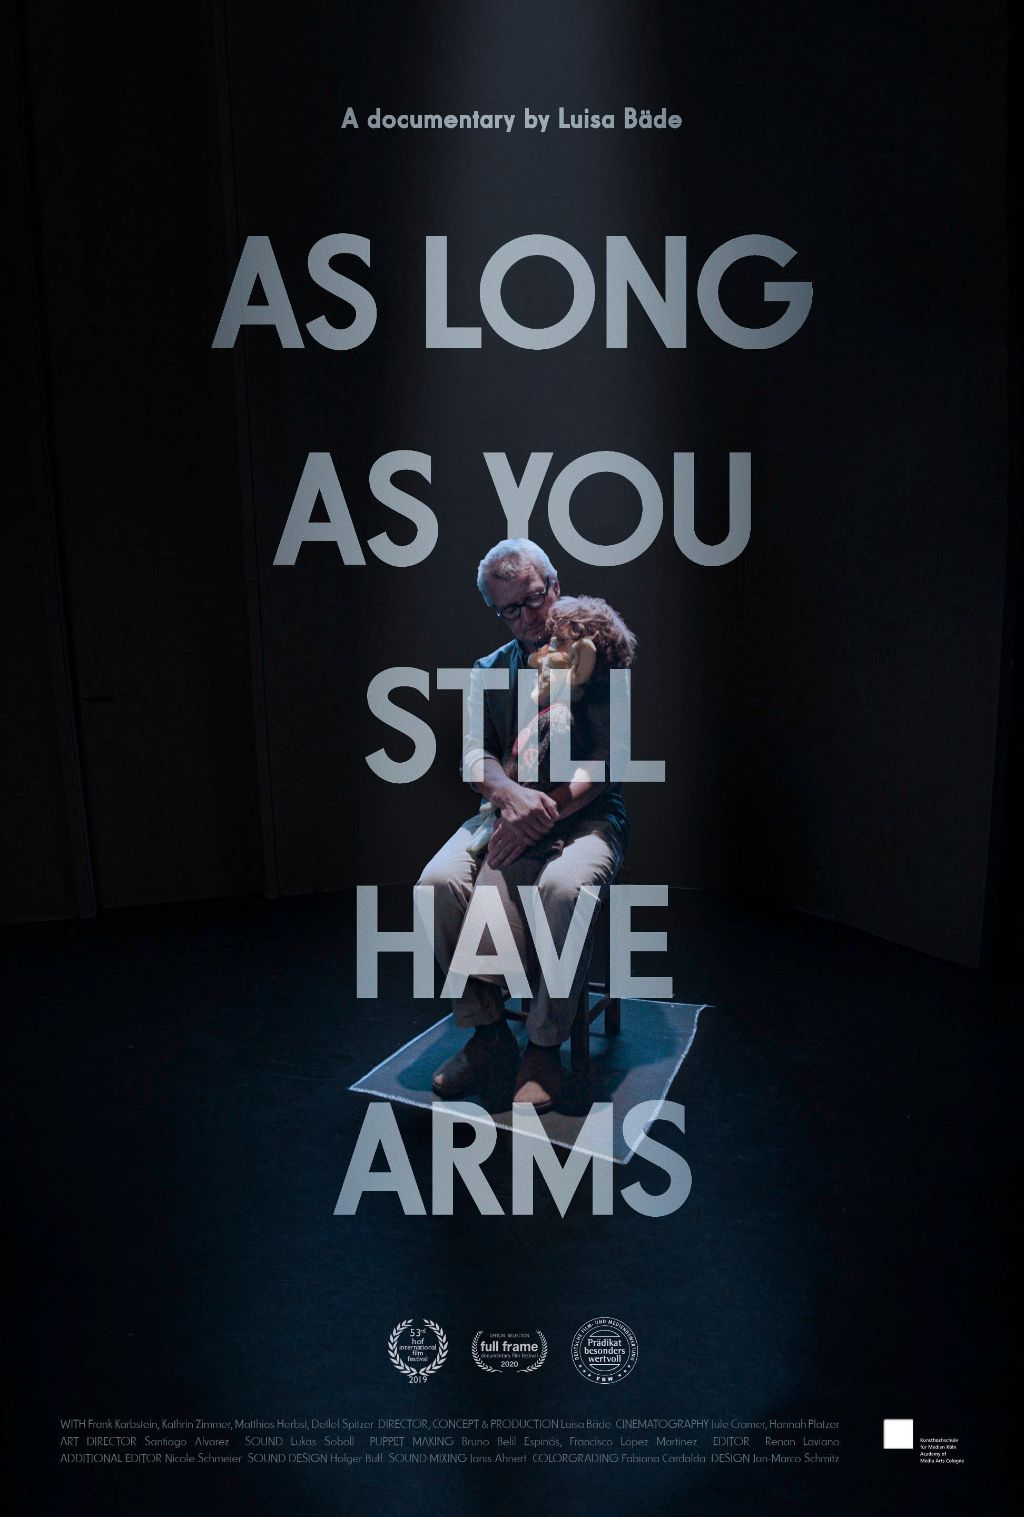 806_2020 As Long as you still have arms_Poster